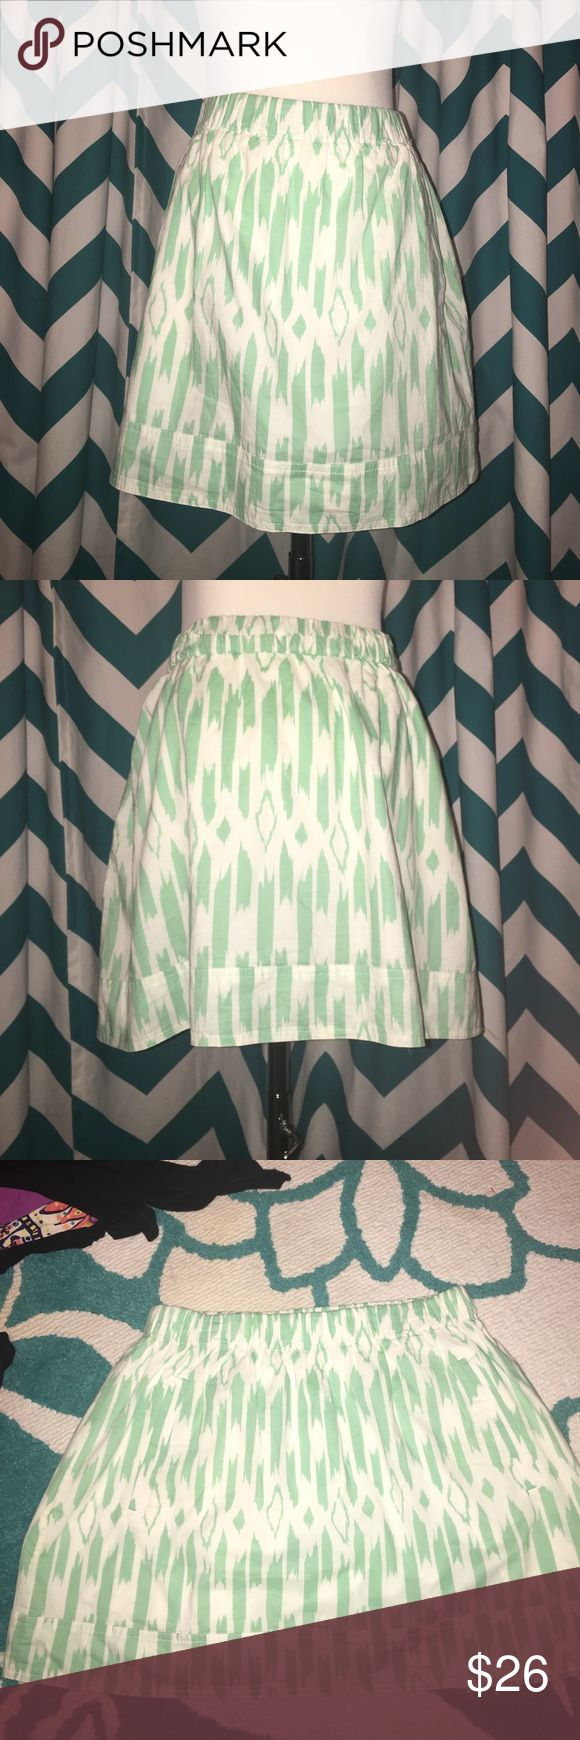 J. Crew Skirt with Pockets NWOT J Crew Skirt with pockets Size Medium. 100% Cotton. NWOT Super comfy! J. Crew Skirts